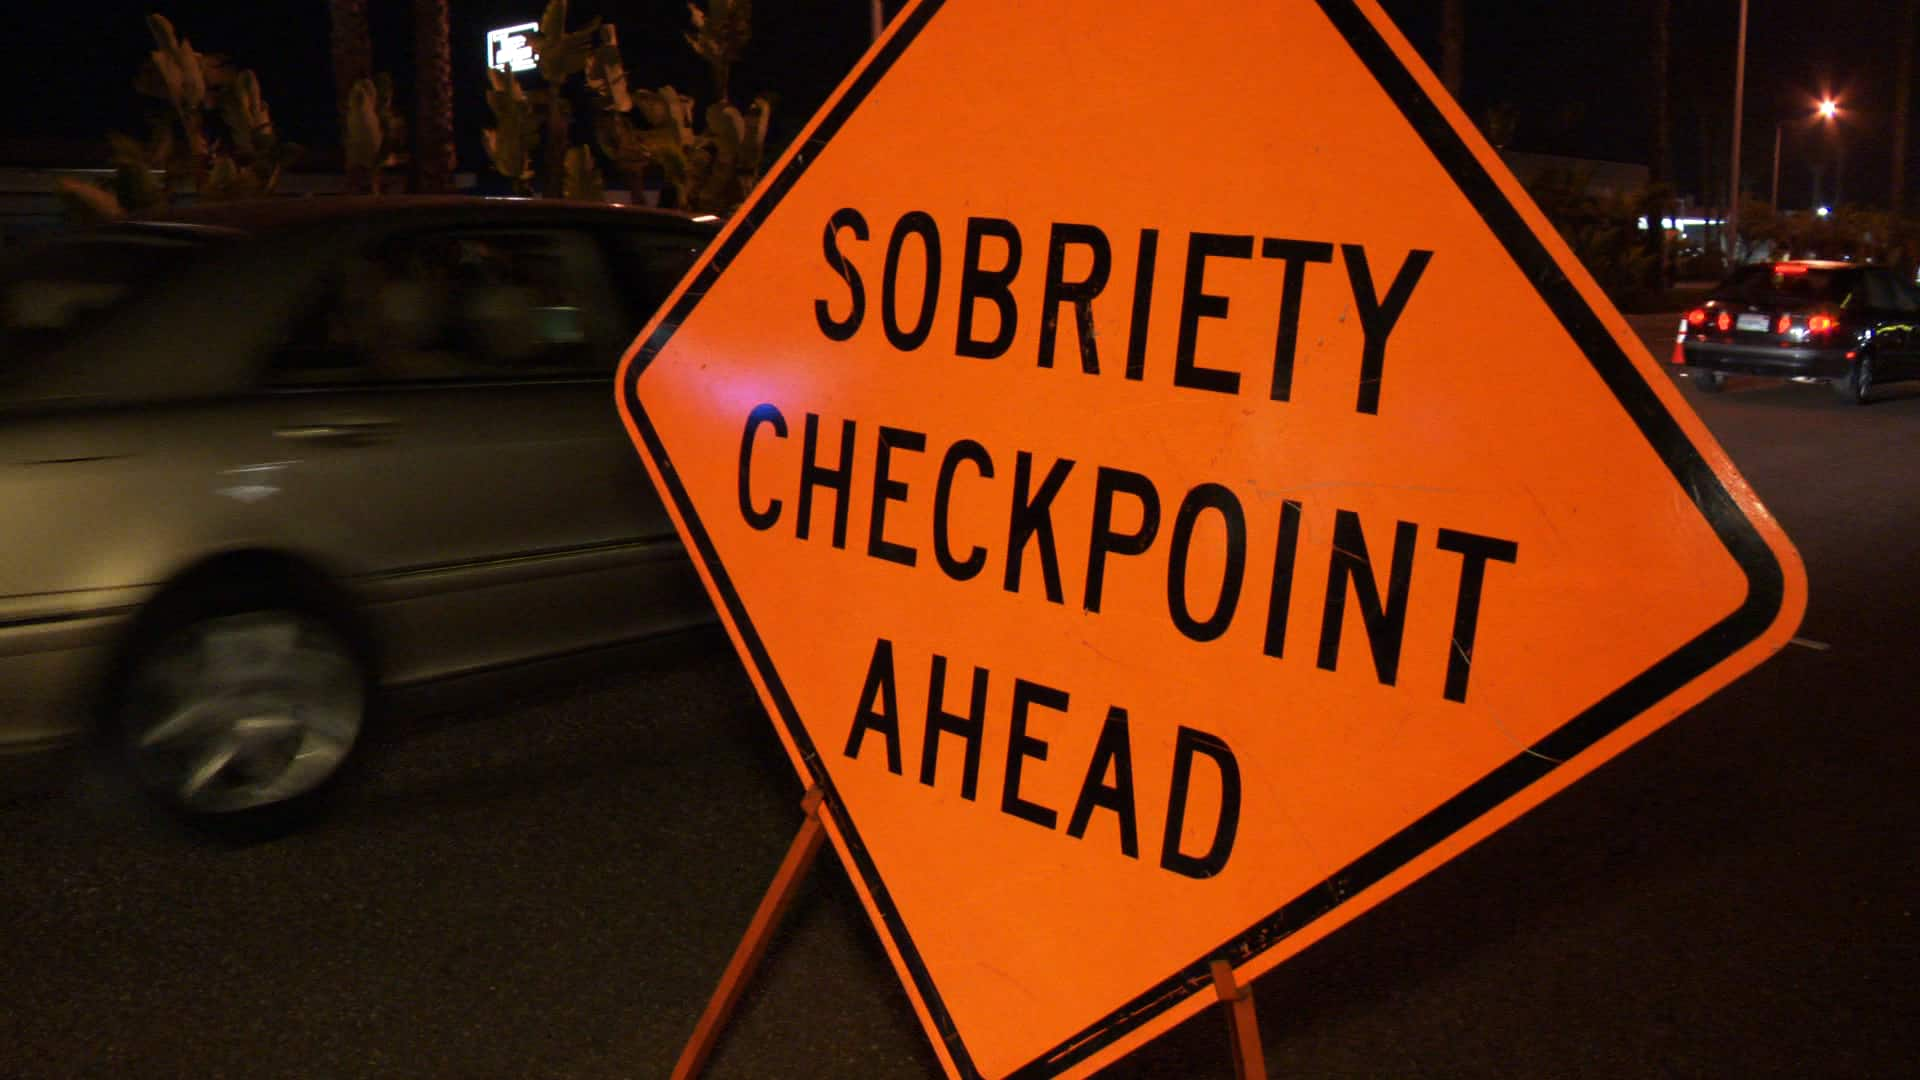 South Dakota, sobriety, attorney, dui, legal, lawyer, sr22, non-owner, non-driver, without a car, checkpoint, rehab, SD